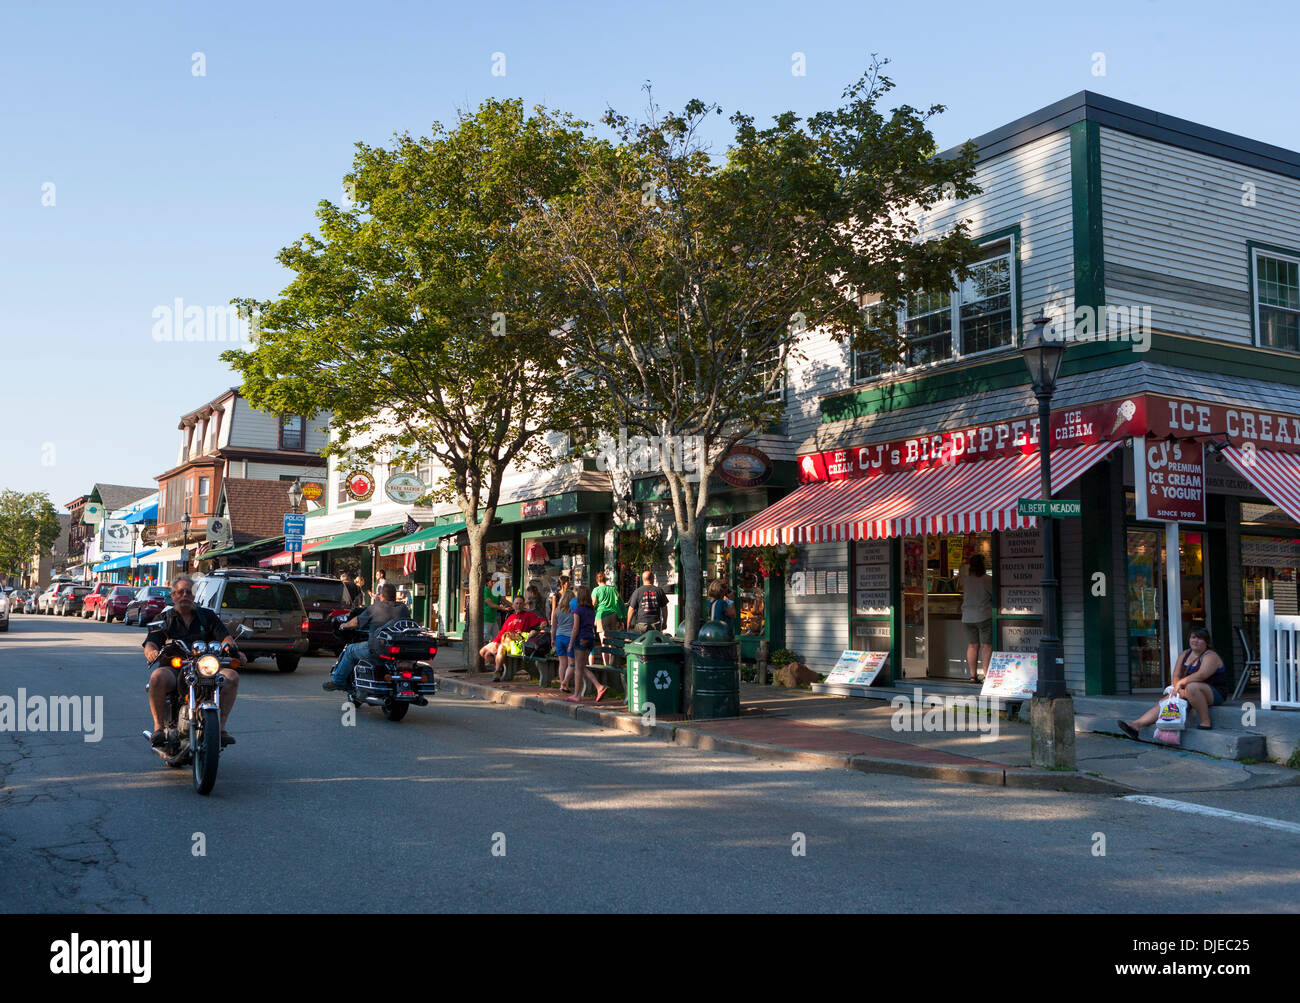 Downtown Bar Harbor, Maine Stock Photo: 63011709 - Alamy